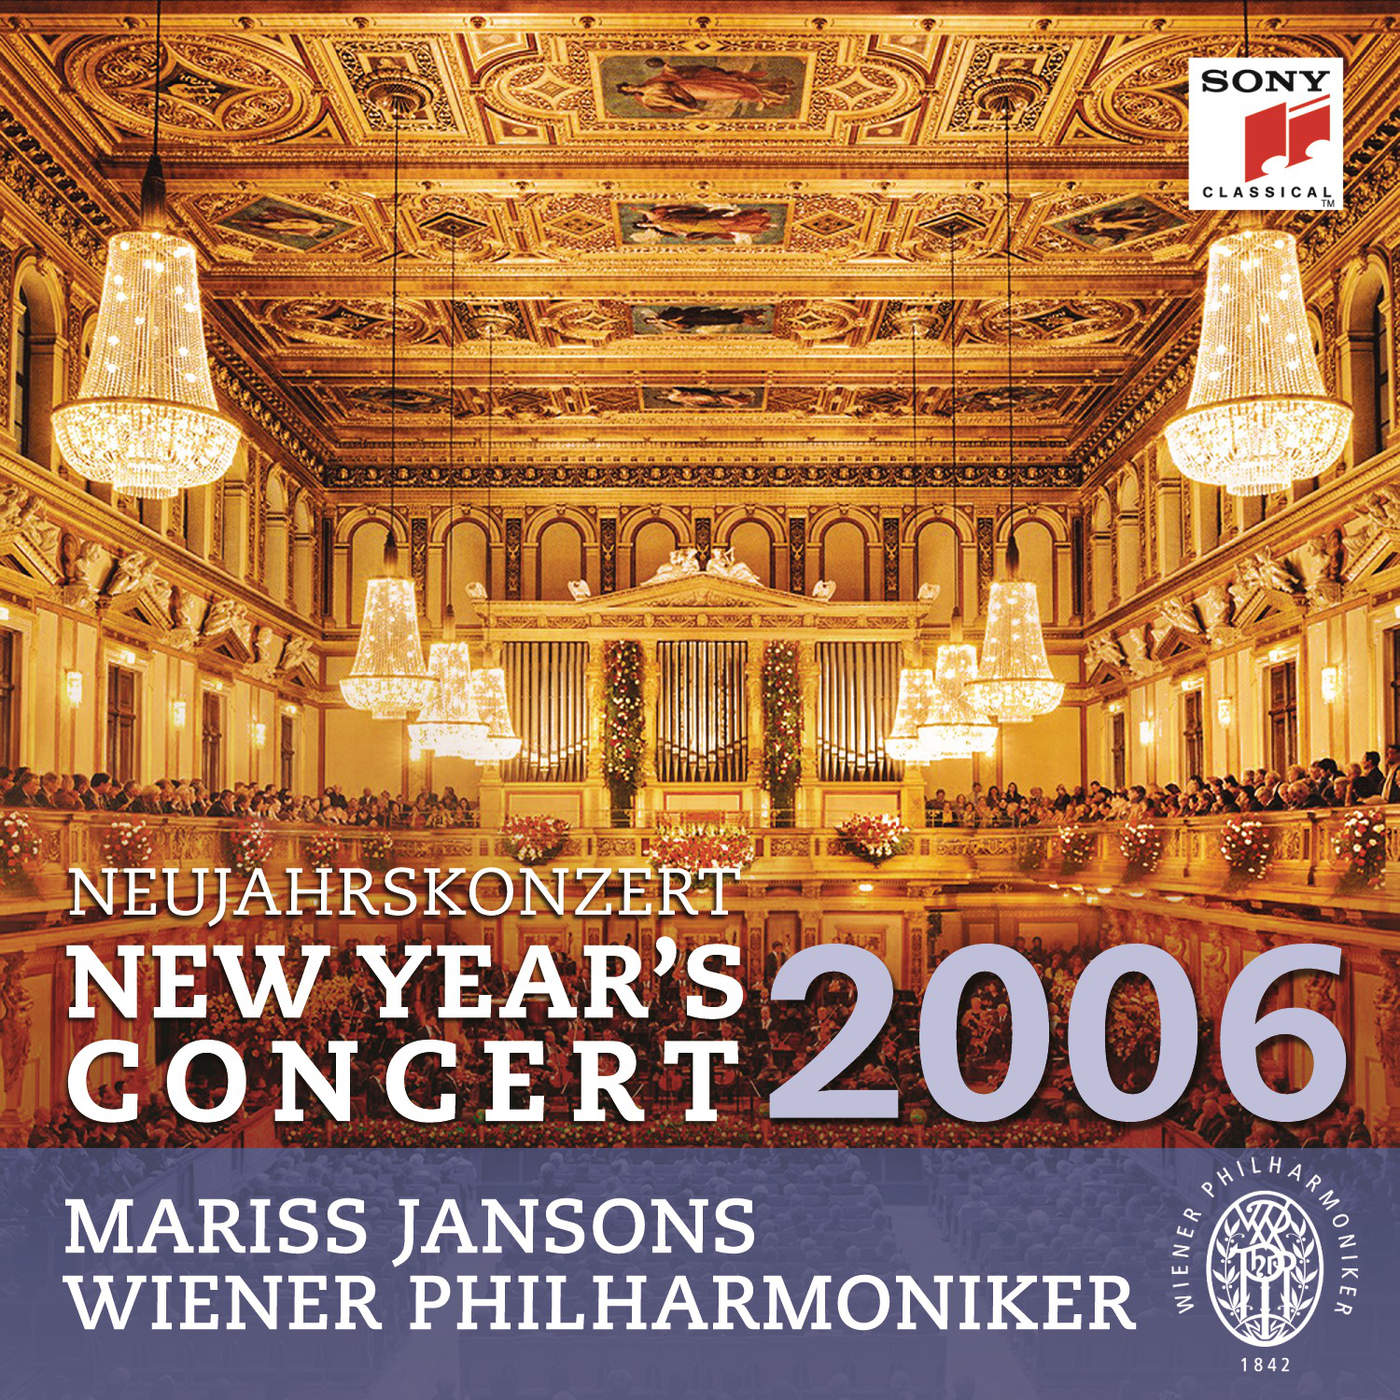 Neujahrskonzert (New Years Concert) 2006